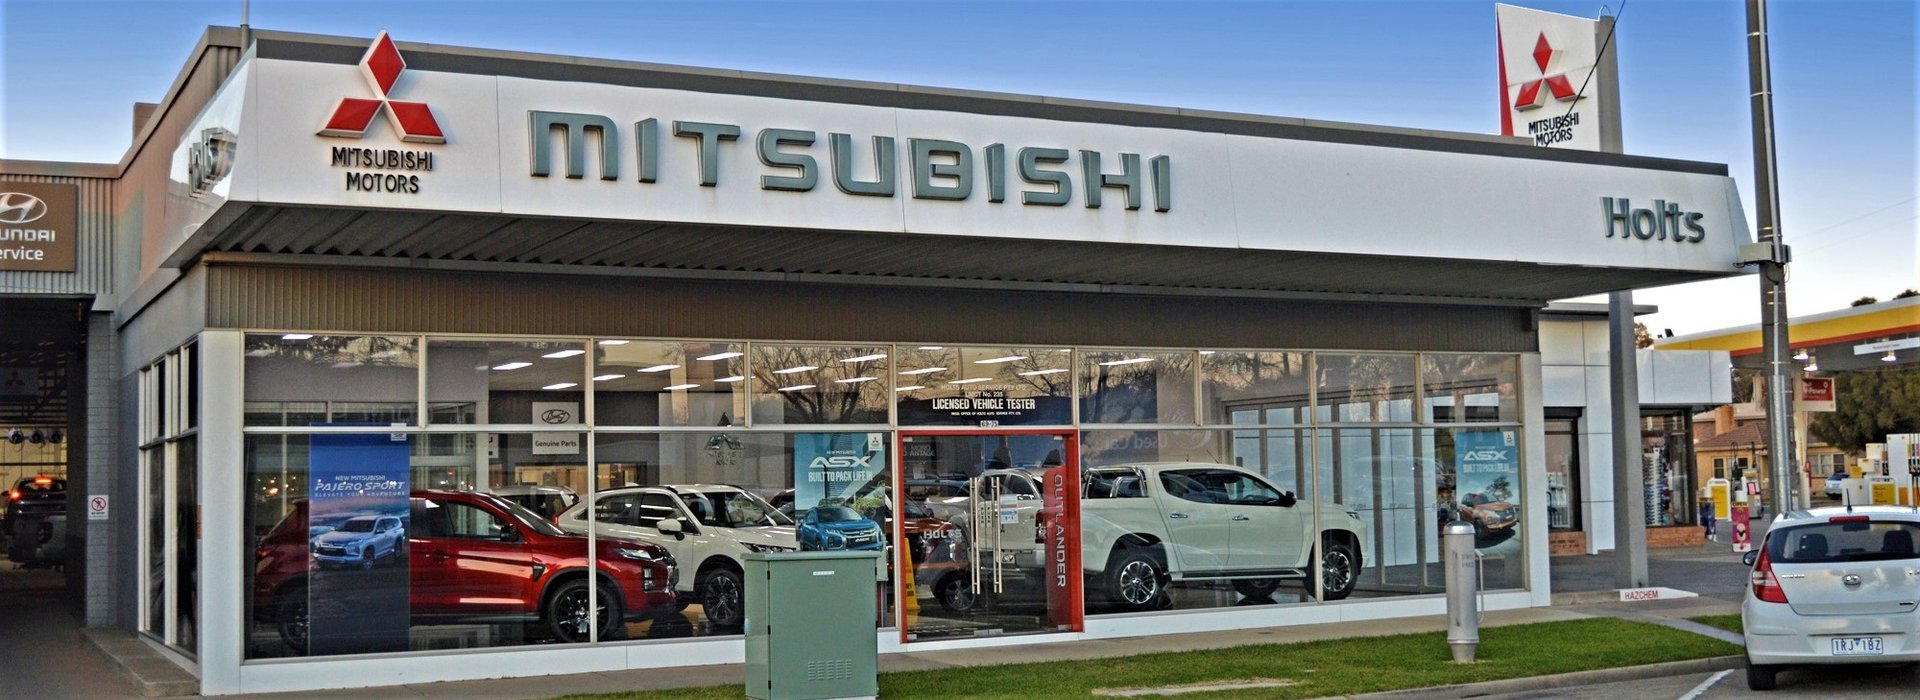 Mitsubishi Showroom 10/07/20